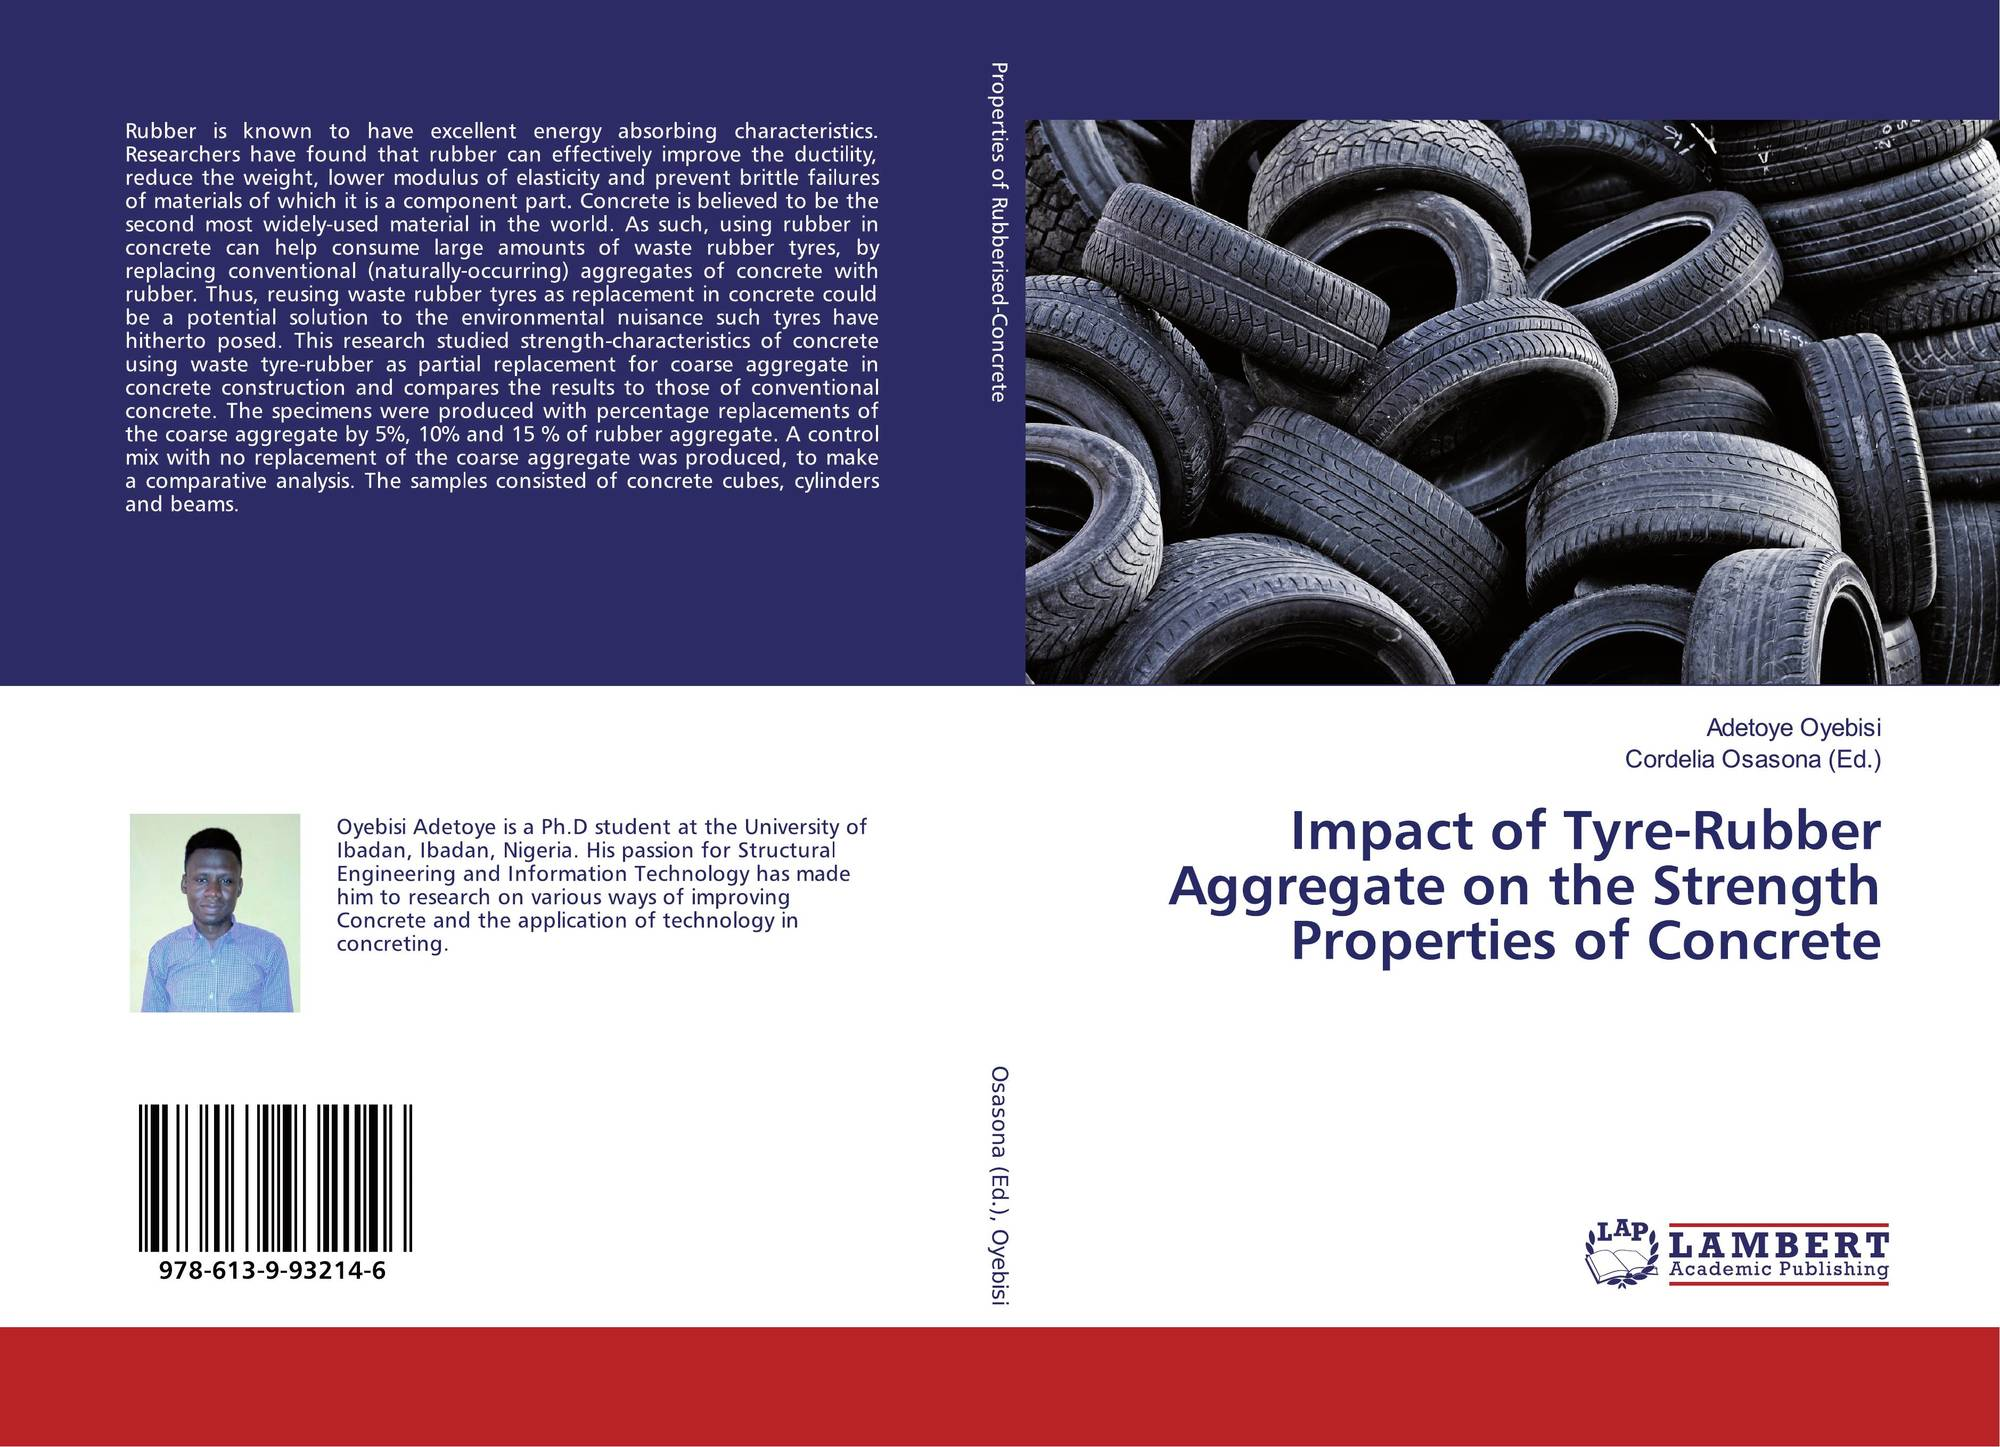 Impact of Tyre-Rubber Aggregate on the Strength Properties of